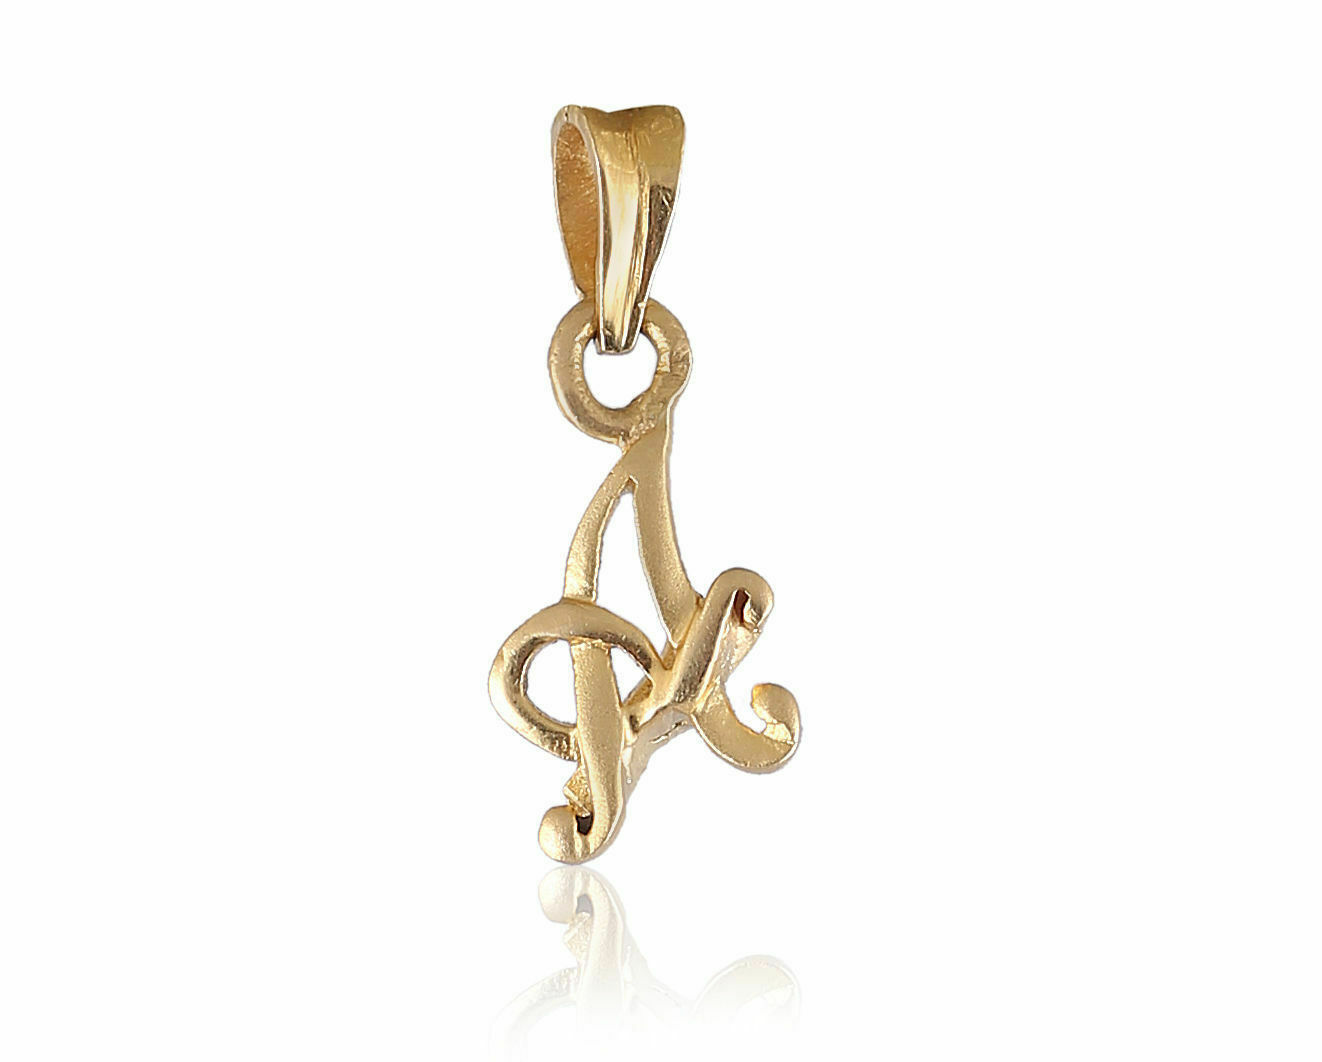 Classy Unisex Italian Initial  A  Pendant In Solid Certified 22Karat Yellow gold